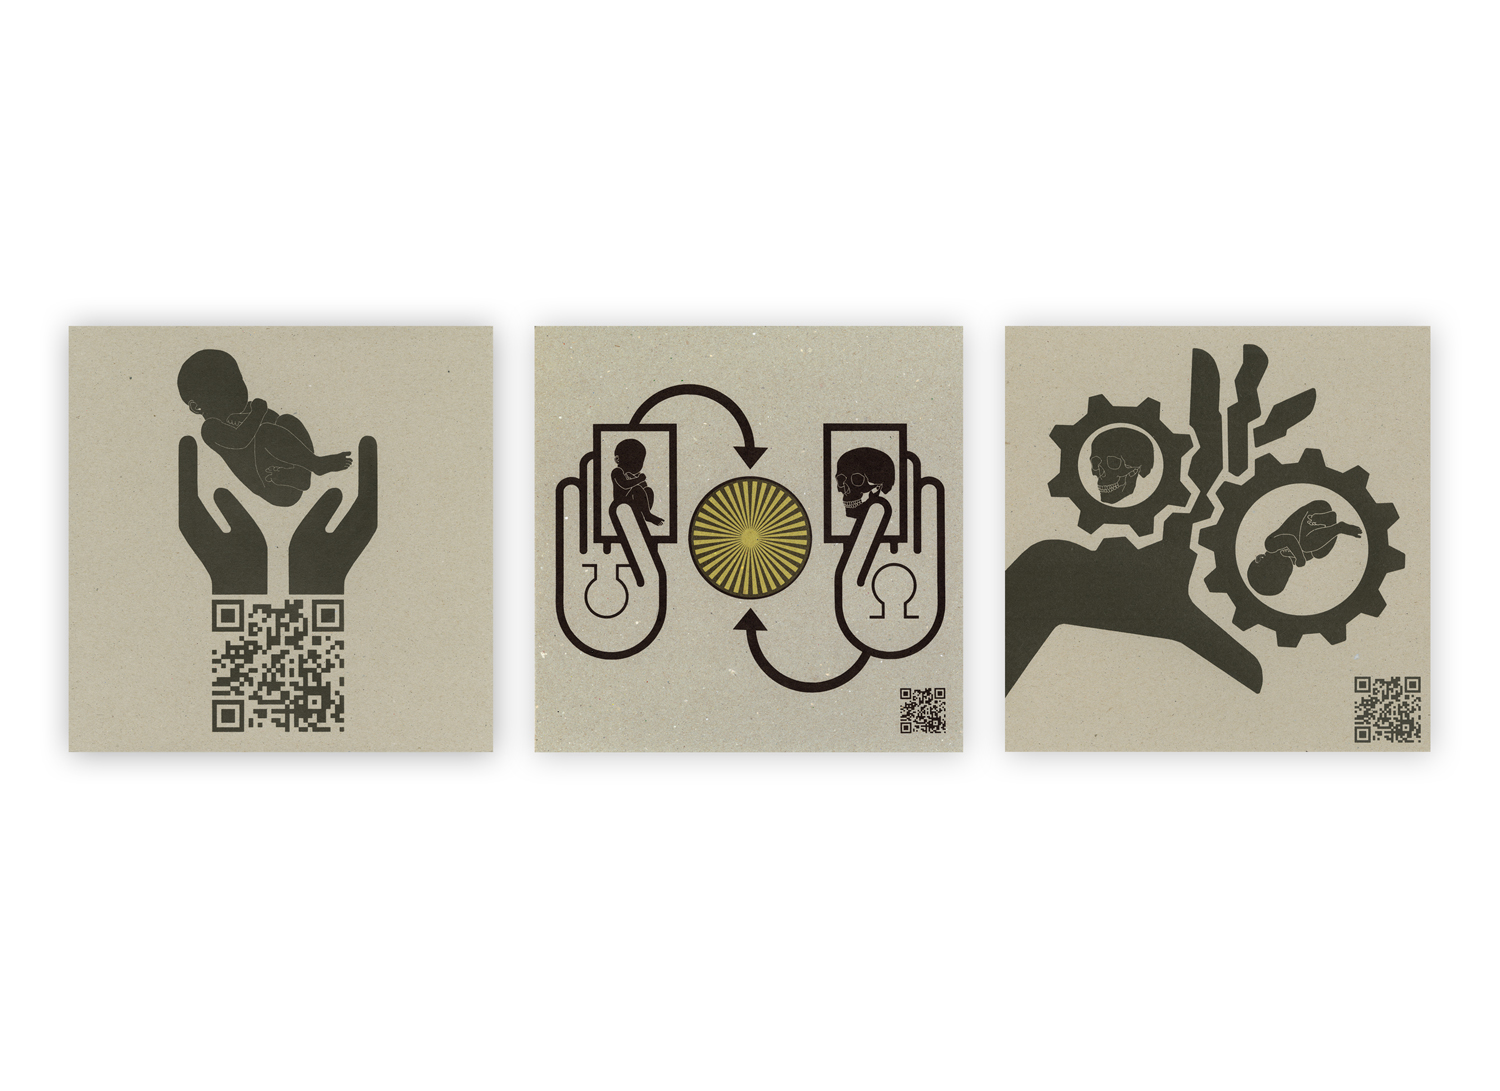 """Image 1- QR Cradle  Image 2- Tarotble Truth  Image 3- In Between Time  11"""" x 11""""  2011  ©Jase Clark"""